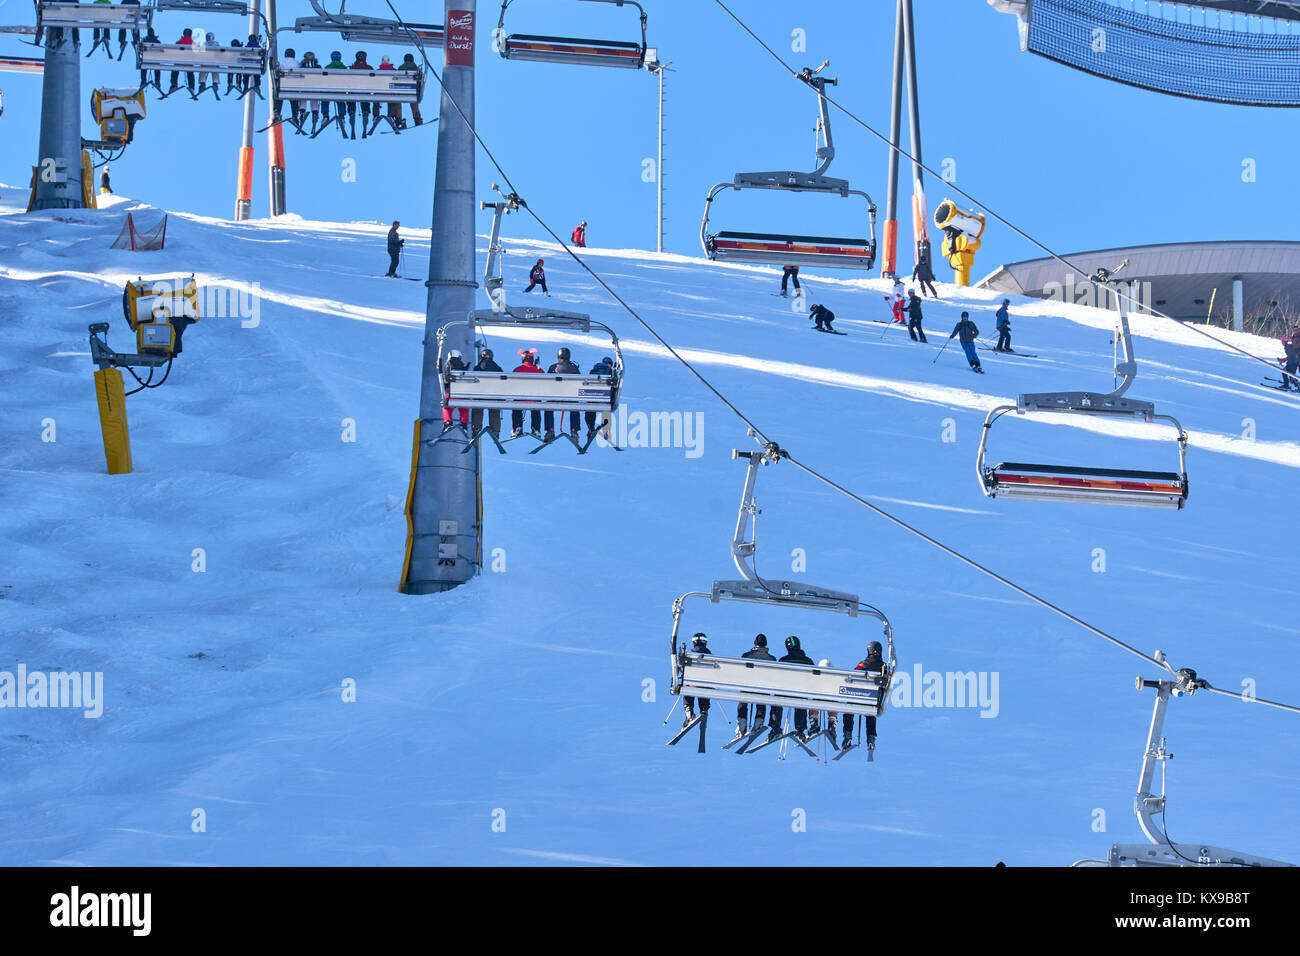 WINTERBERG, GERMANY - FEBRUARY 15, 2017: People in chairlifts transported to a top at Ski Carousel Winterberg - Stock Image